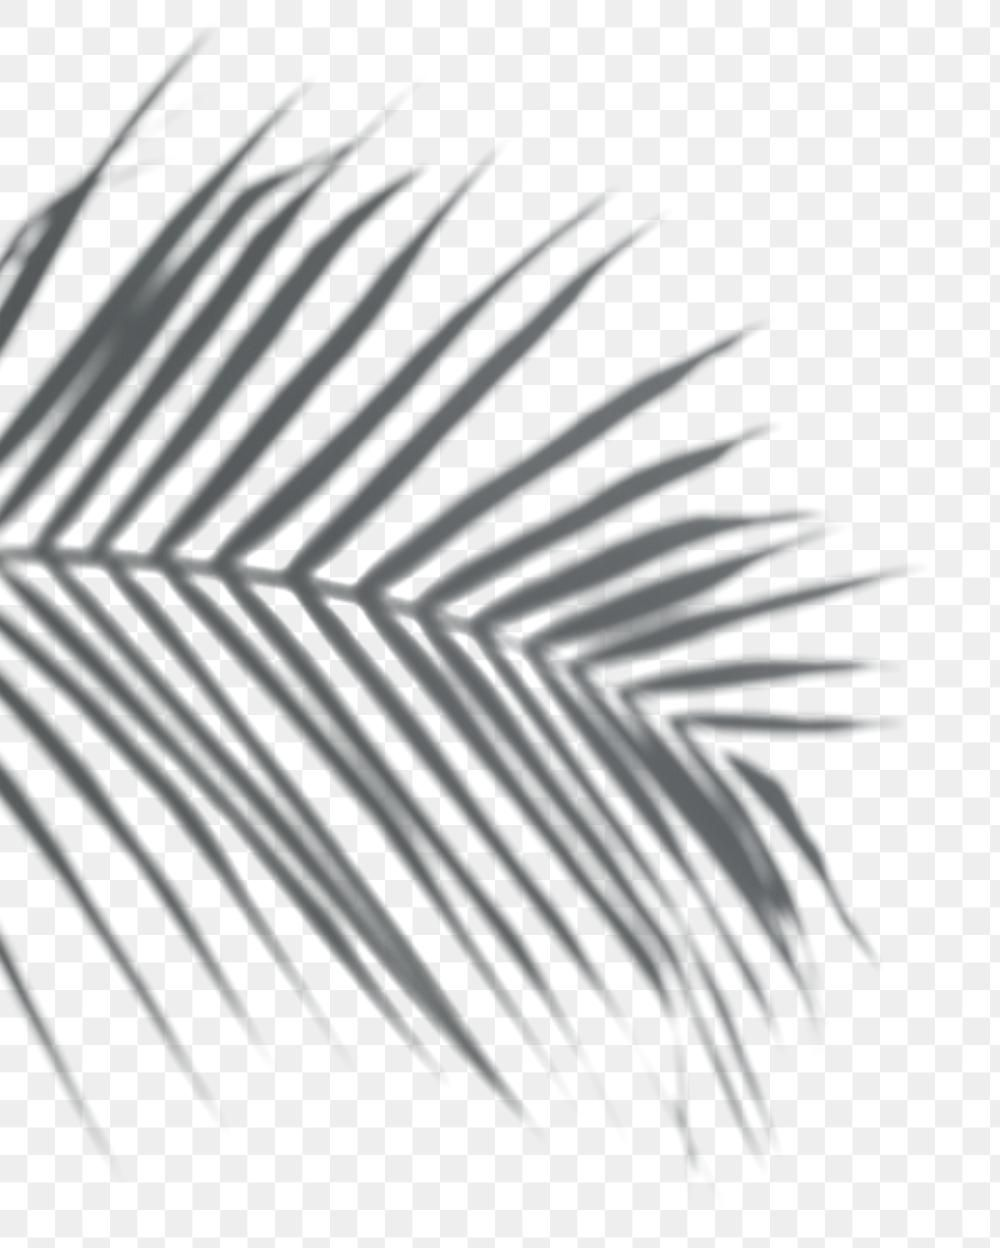 Shadow Of Palm Leaves Png On A Transparent Background Premium Image By Rawpixel Com Shadow Shadow Plants Palm Leaves